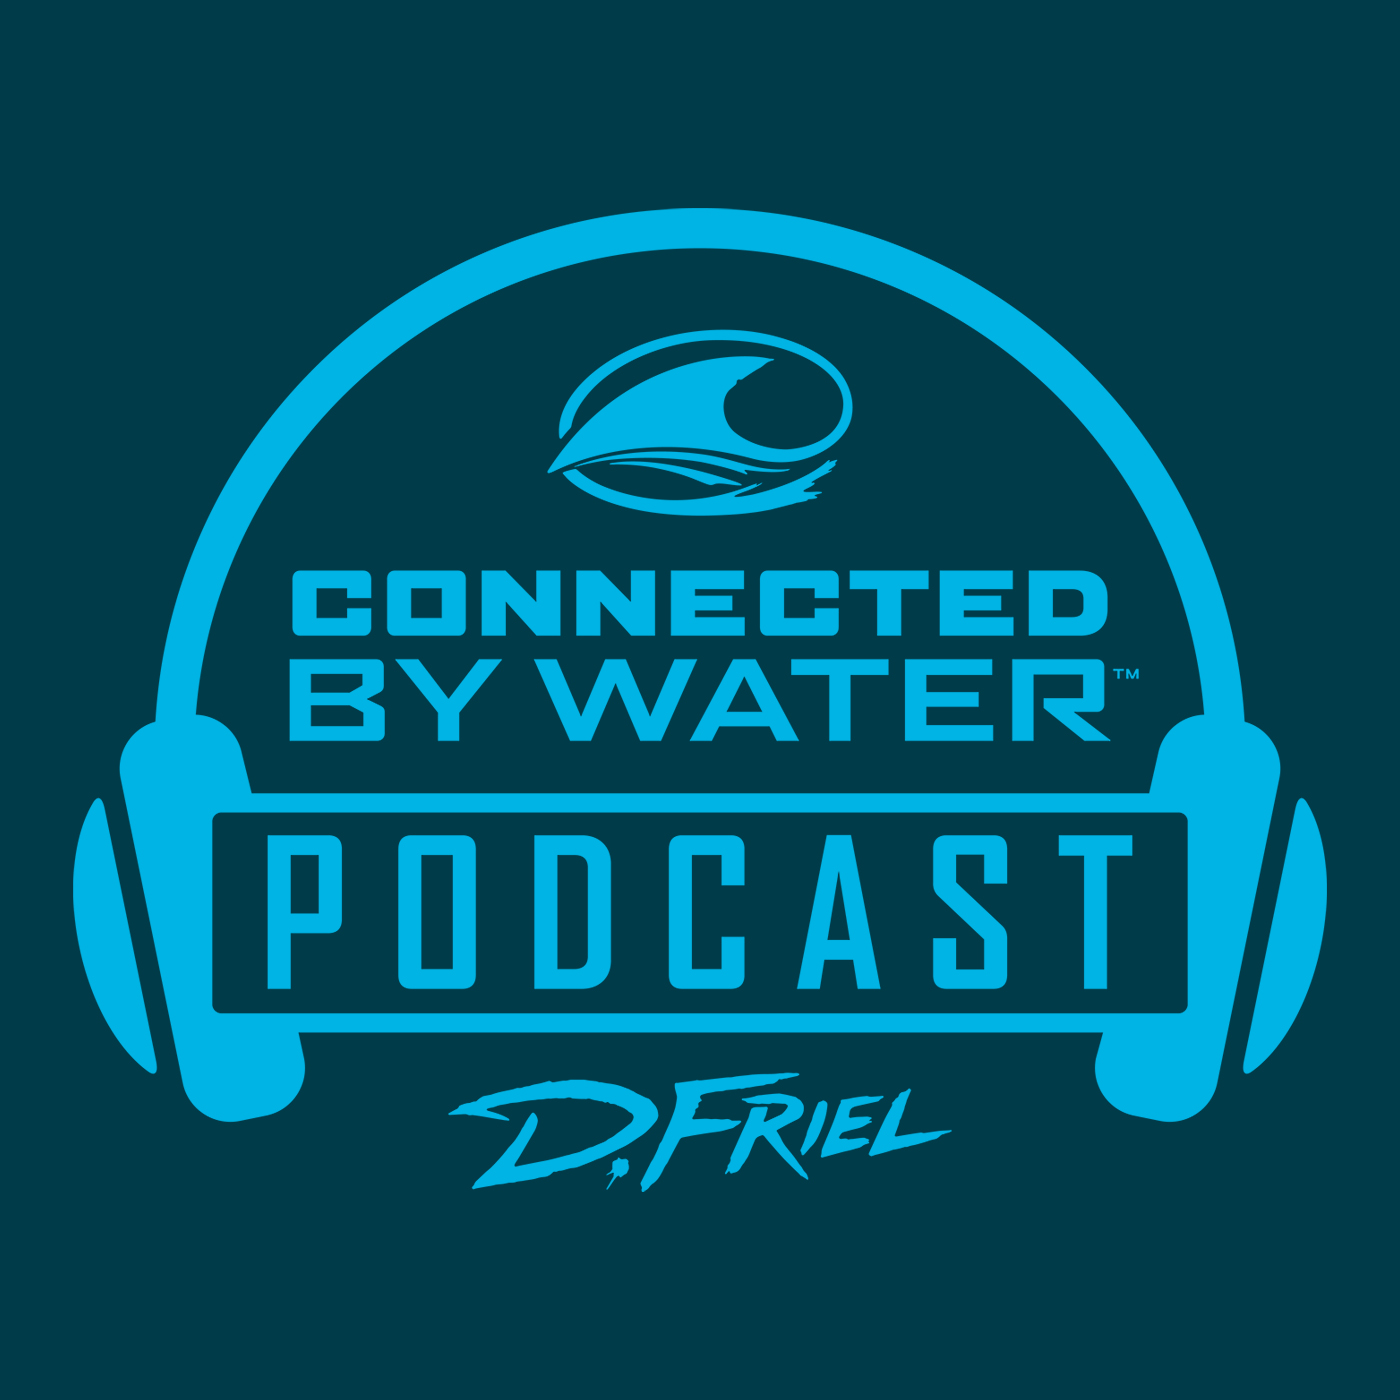 Podcast D.Friel - Connected by Water show art